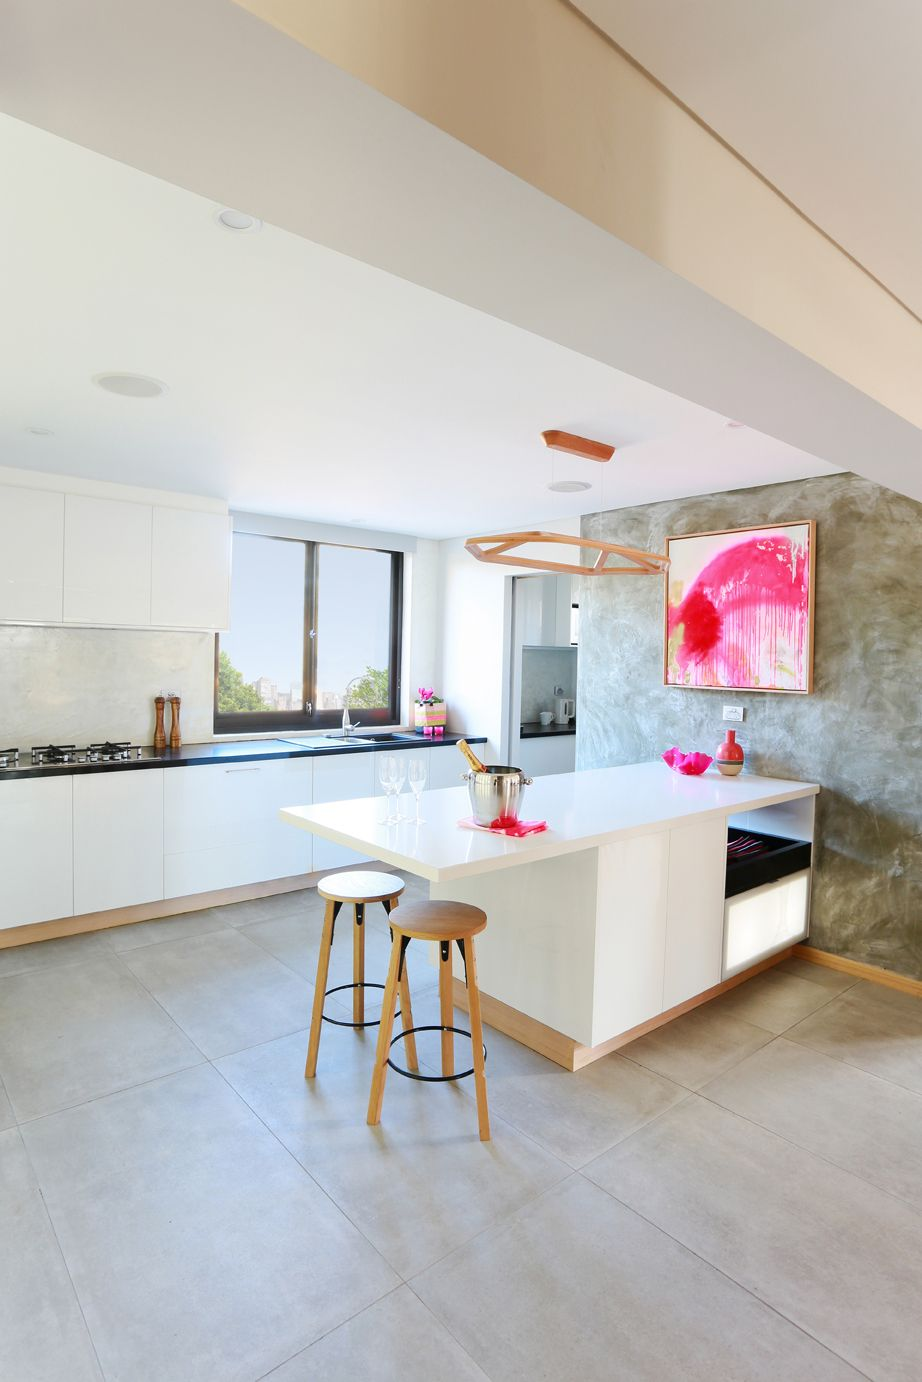 Matt from The Block launches polished concrete business Sky High